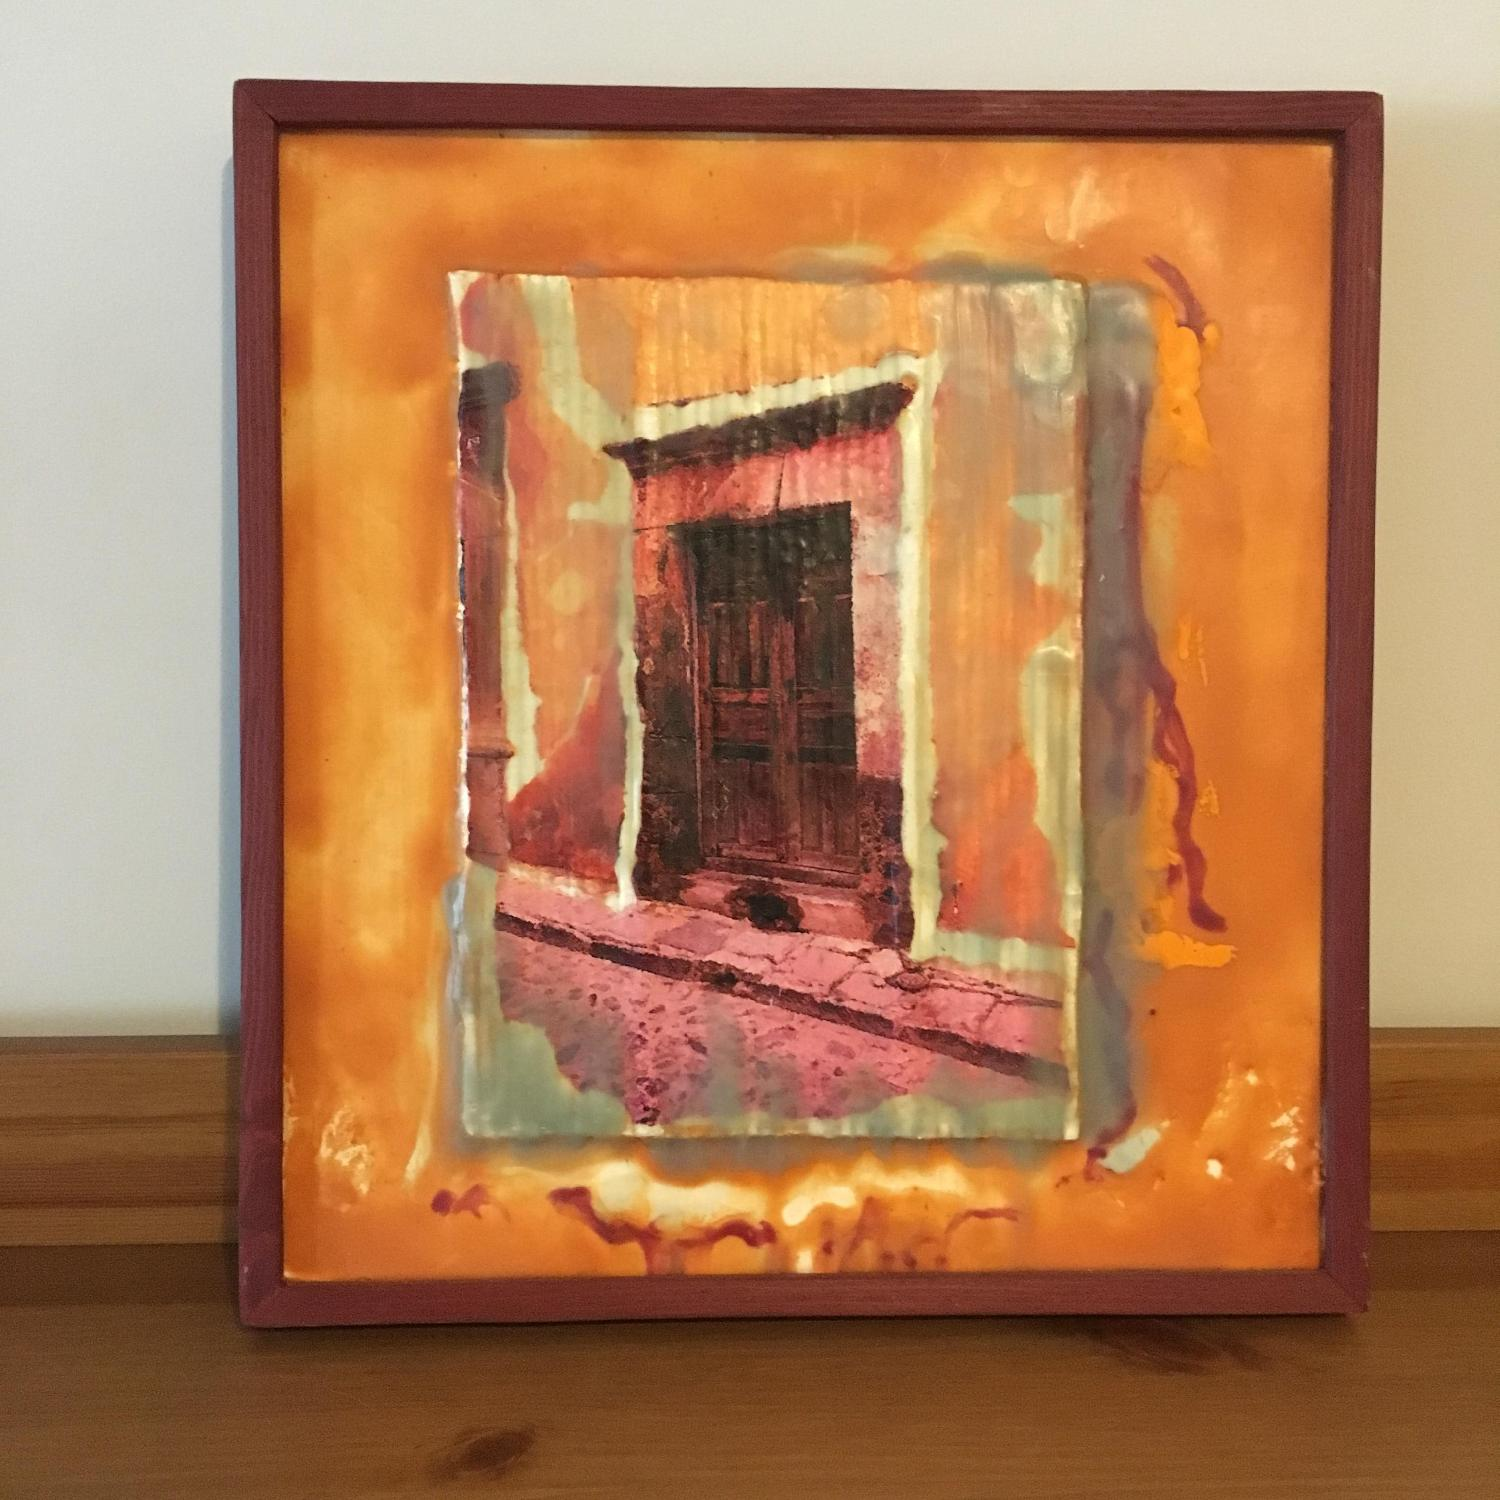 Calle Morada Collage Encaustic Beeswax - image-1